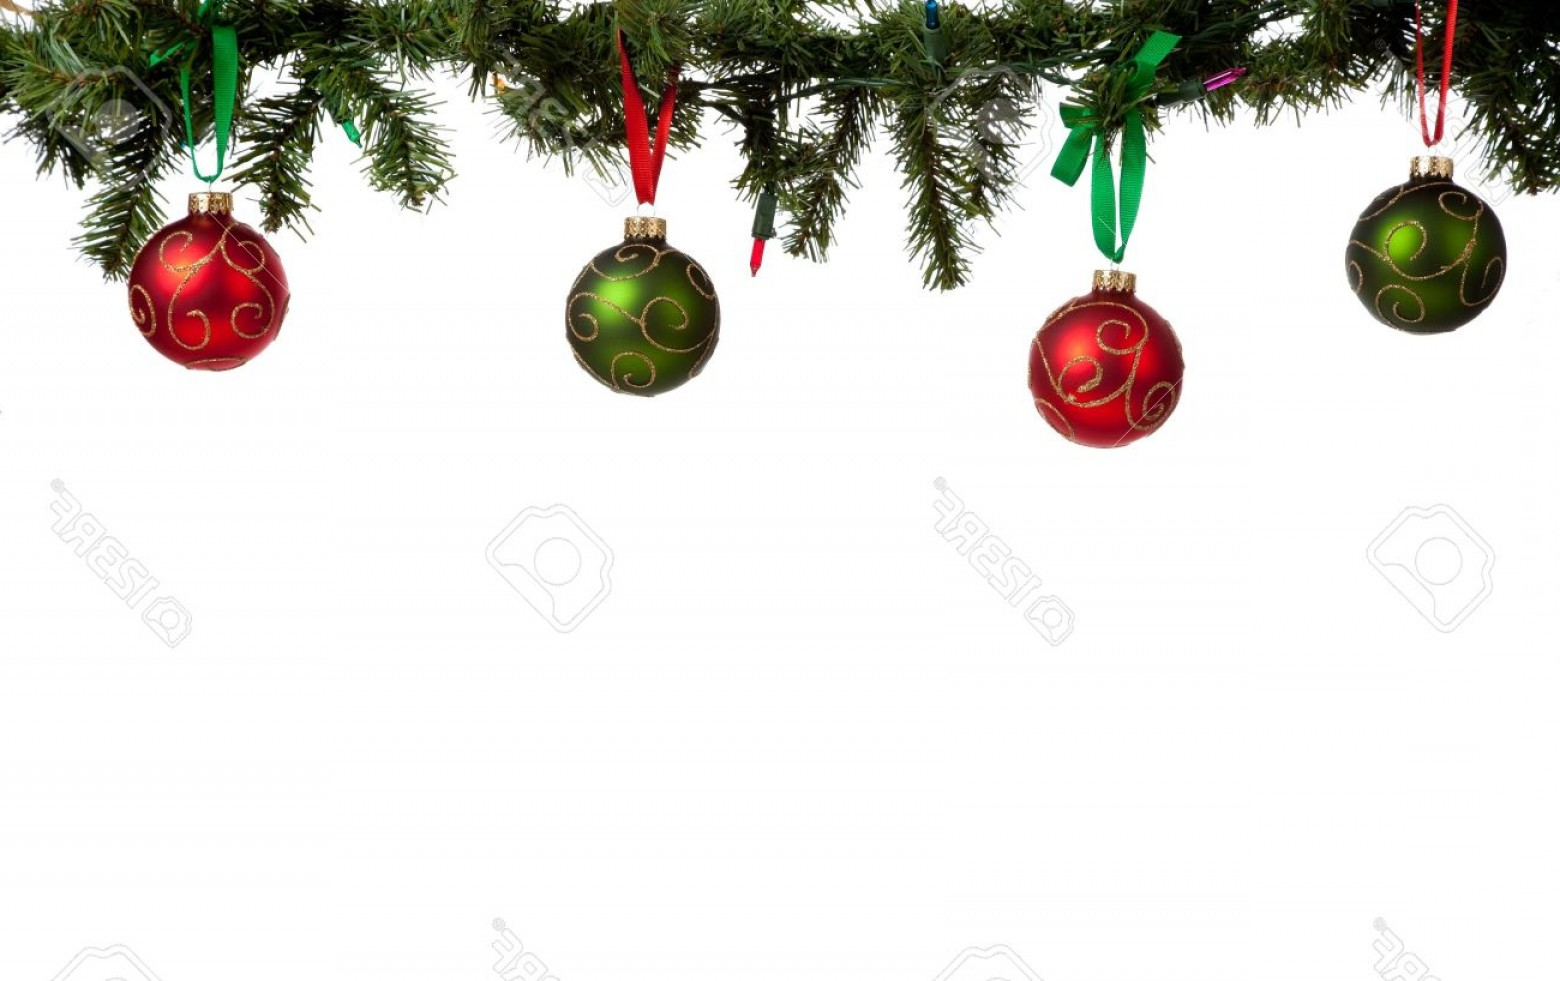 1560x981 Photoa Christmas Ornament Border With Red And Green Glittered